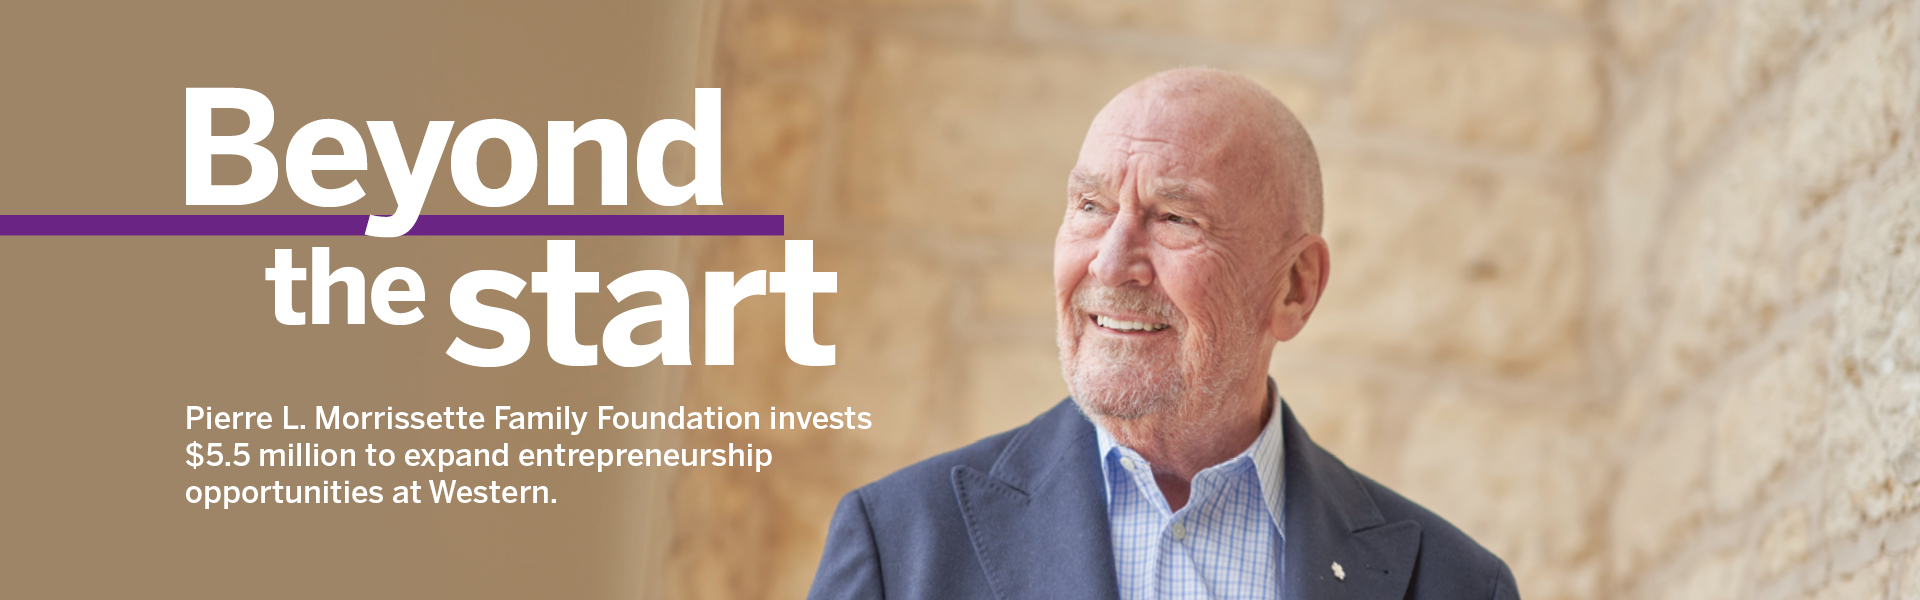 Pierre L. Morrissette Family Foundation invests $5.5 million to expand entrepreneurship opportunities at Western